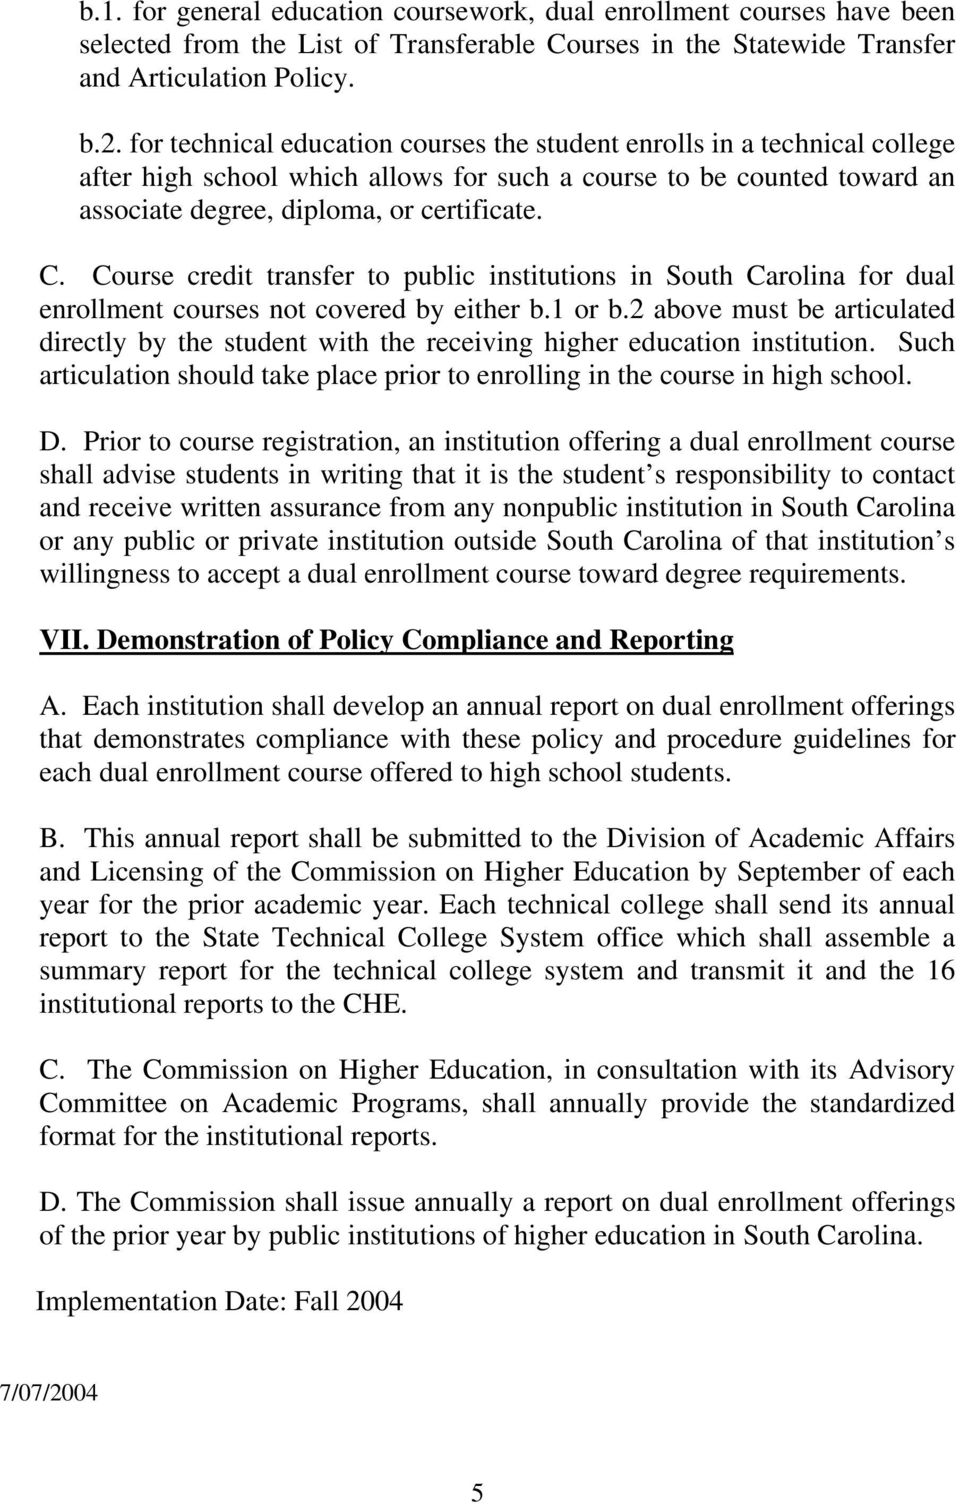 Course credit transfer to public institutions in South Carolina for dual enrollment courses not covered by either b.1 or b.